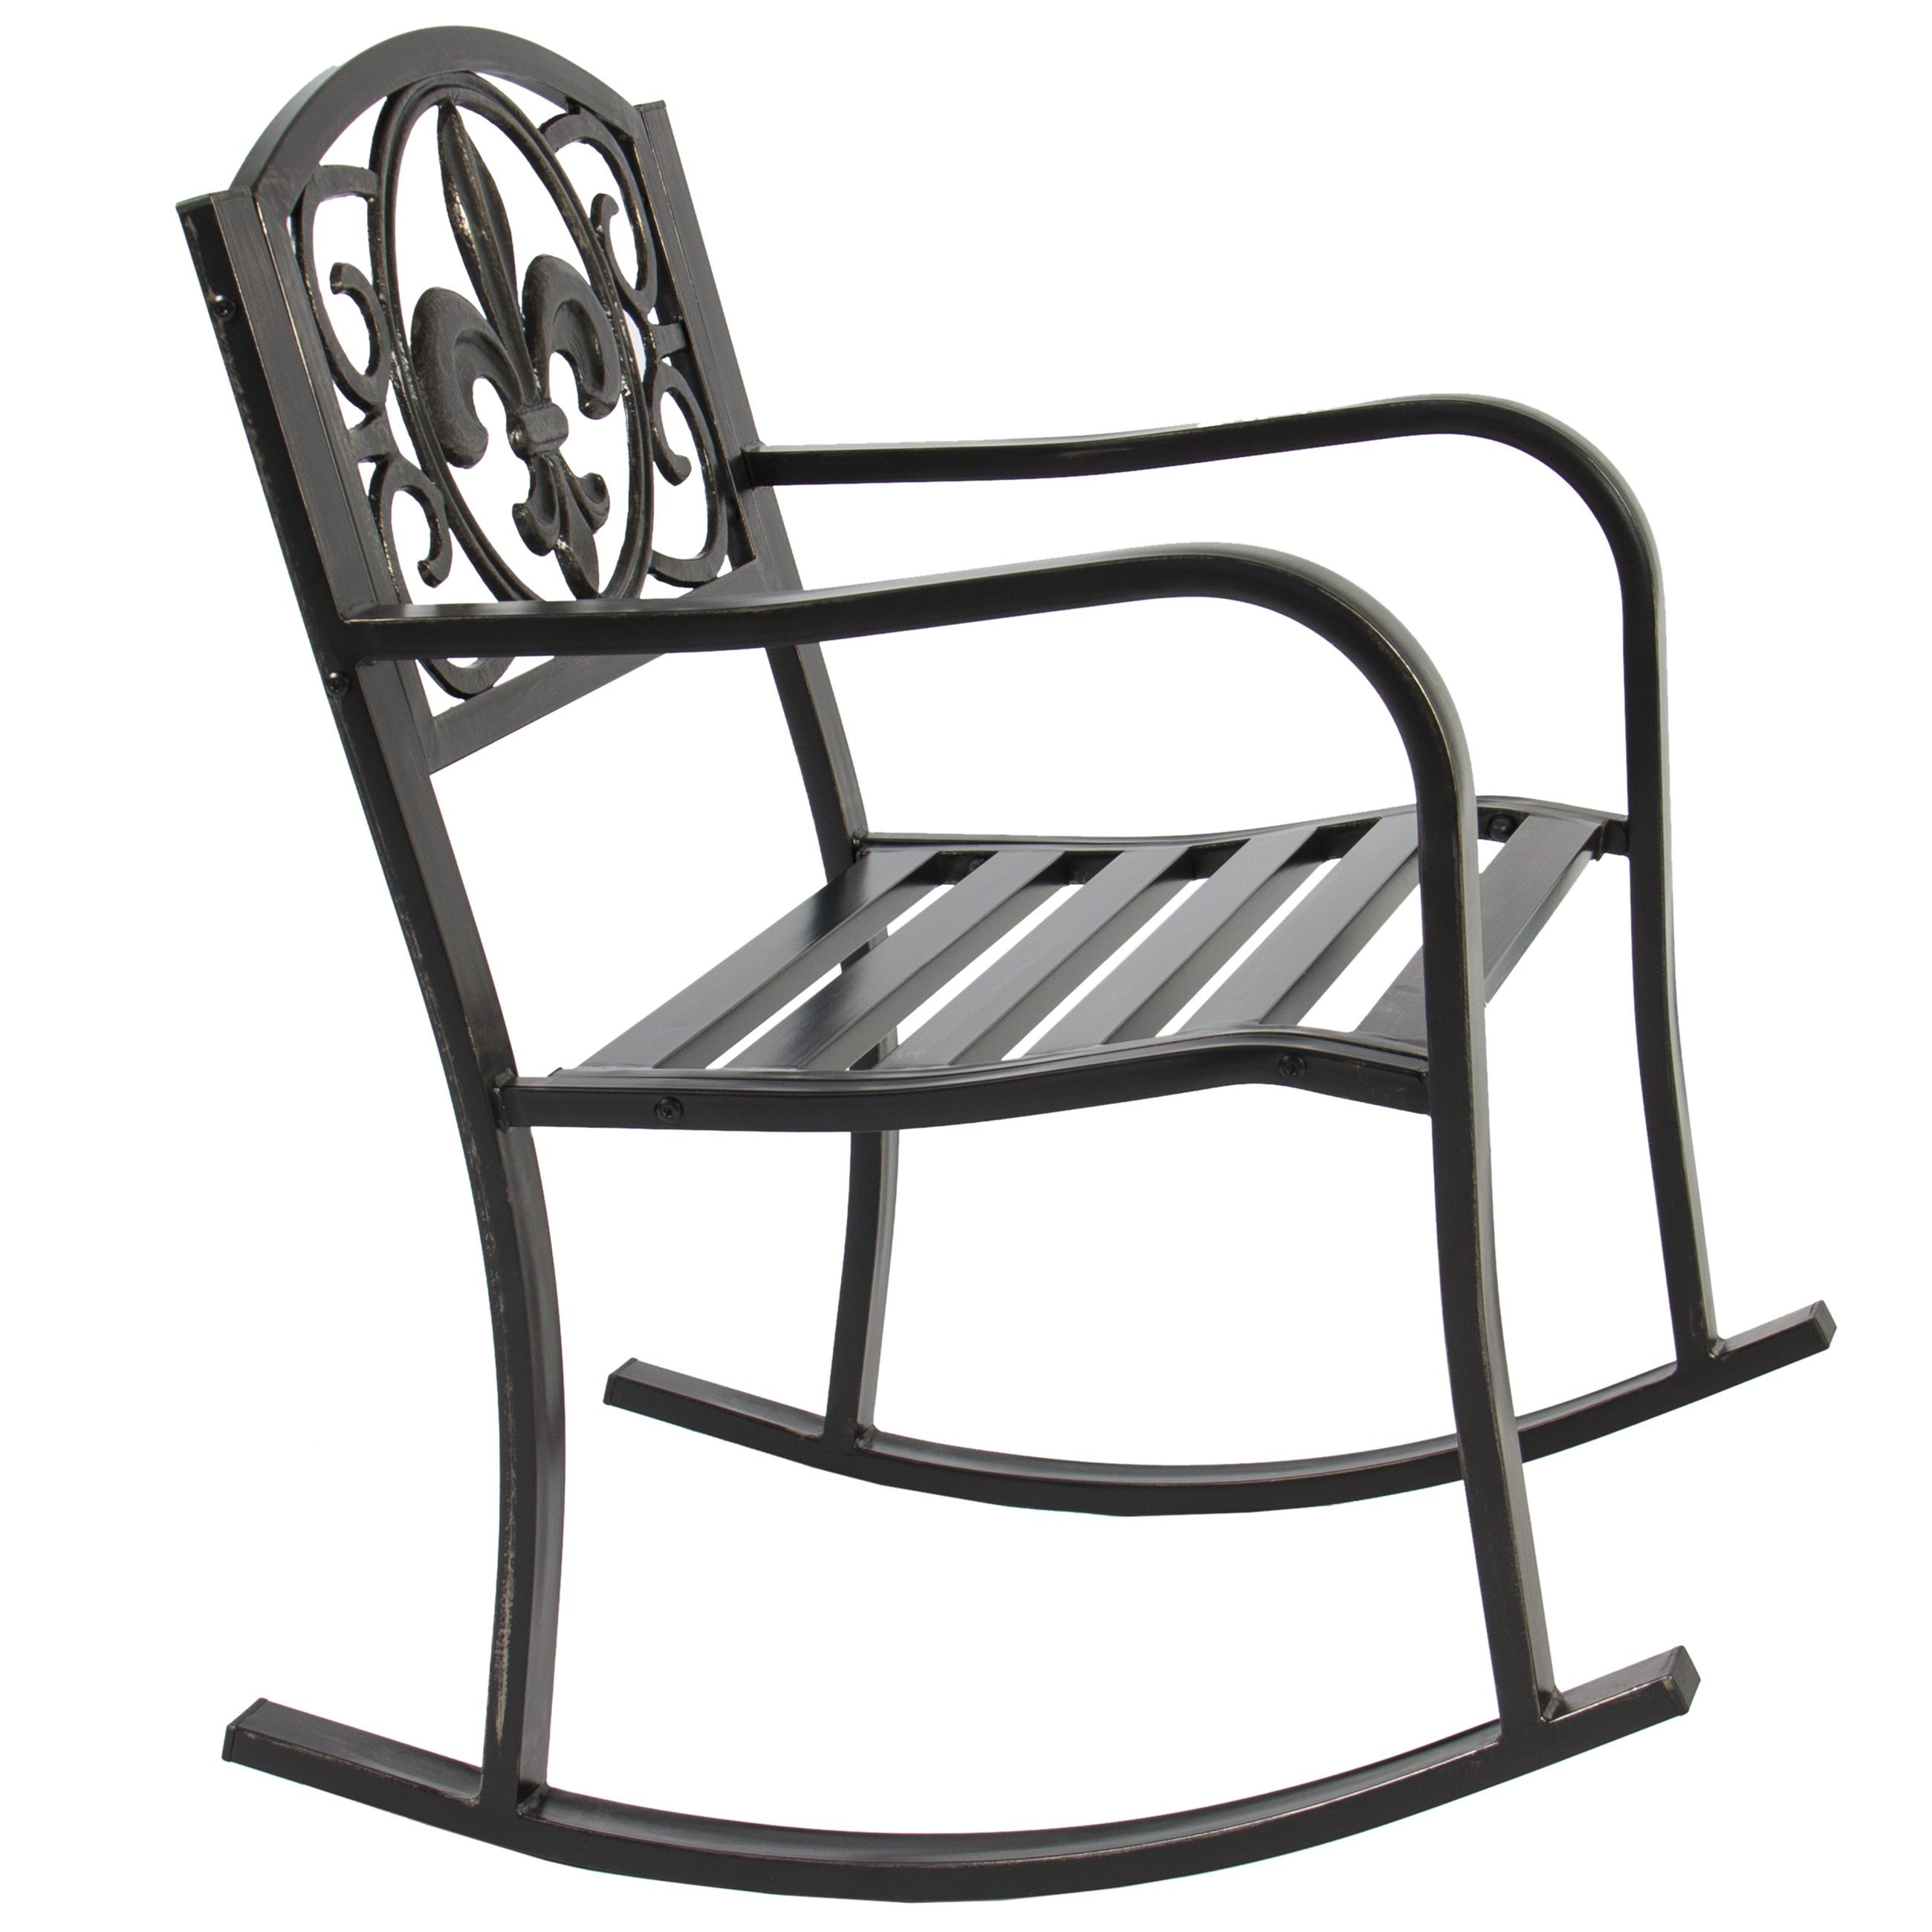 Best Choice Products Metal Rocking Chair Seat For Patio Porch Deck